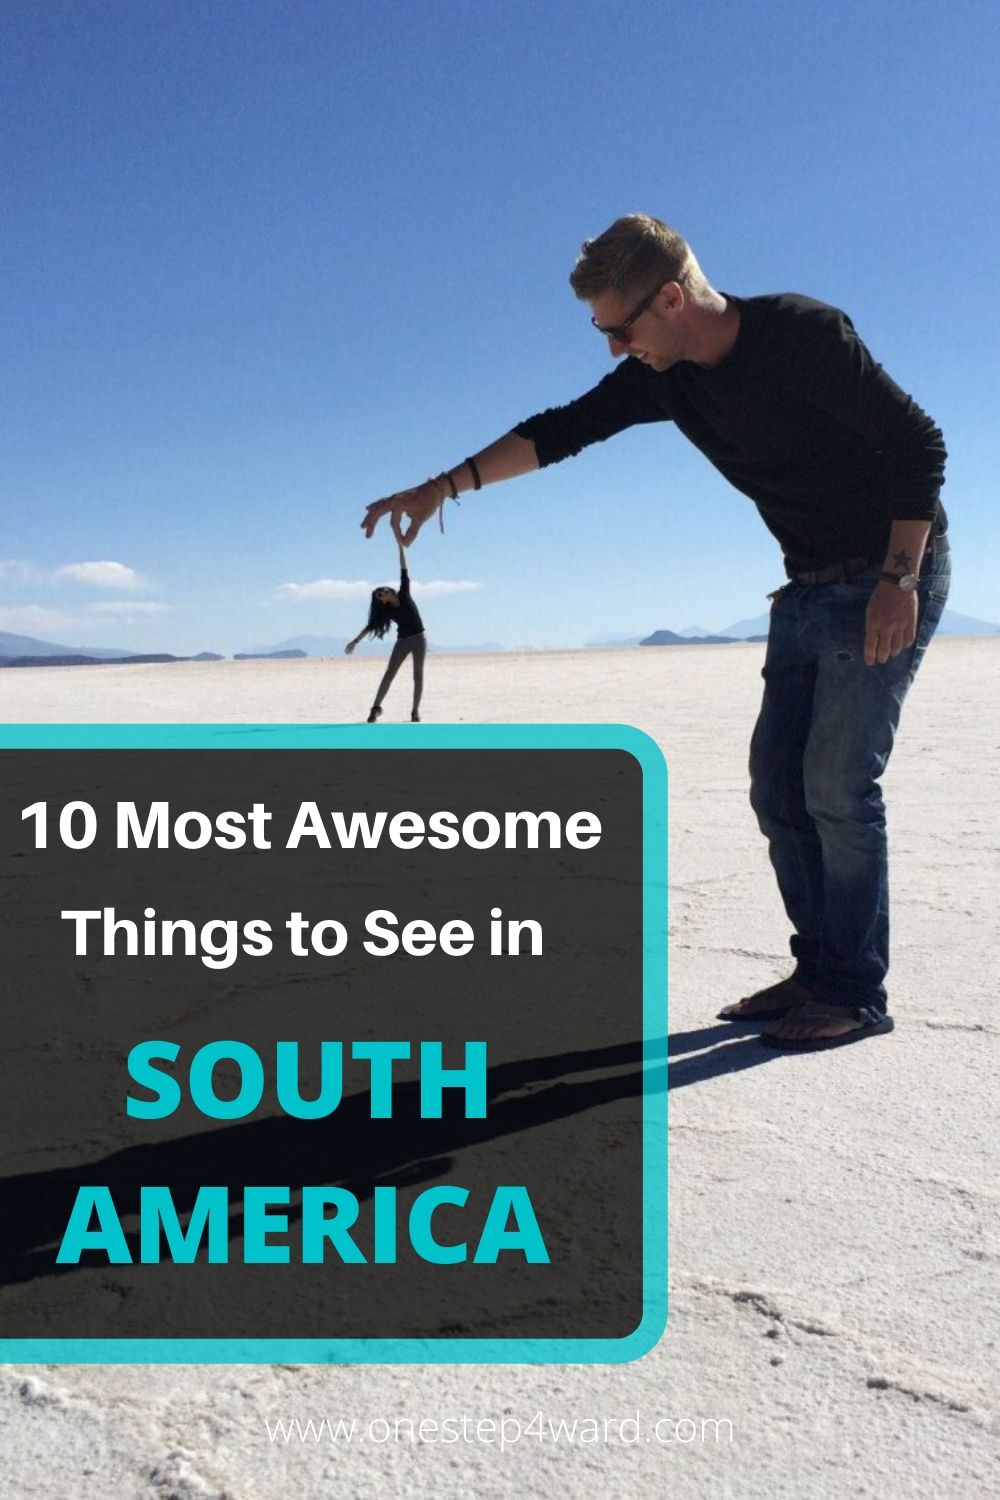 10 Most Awesome Things to See in South America